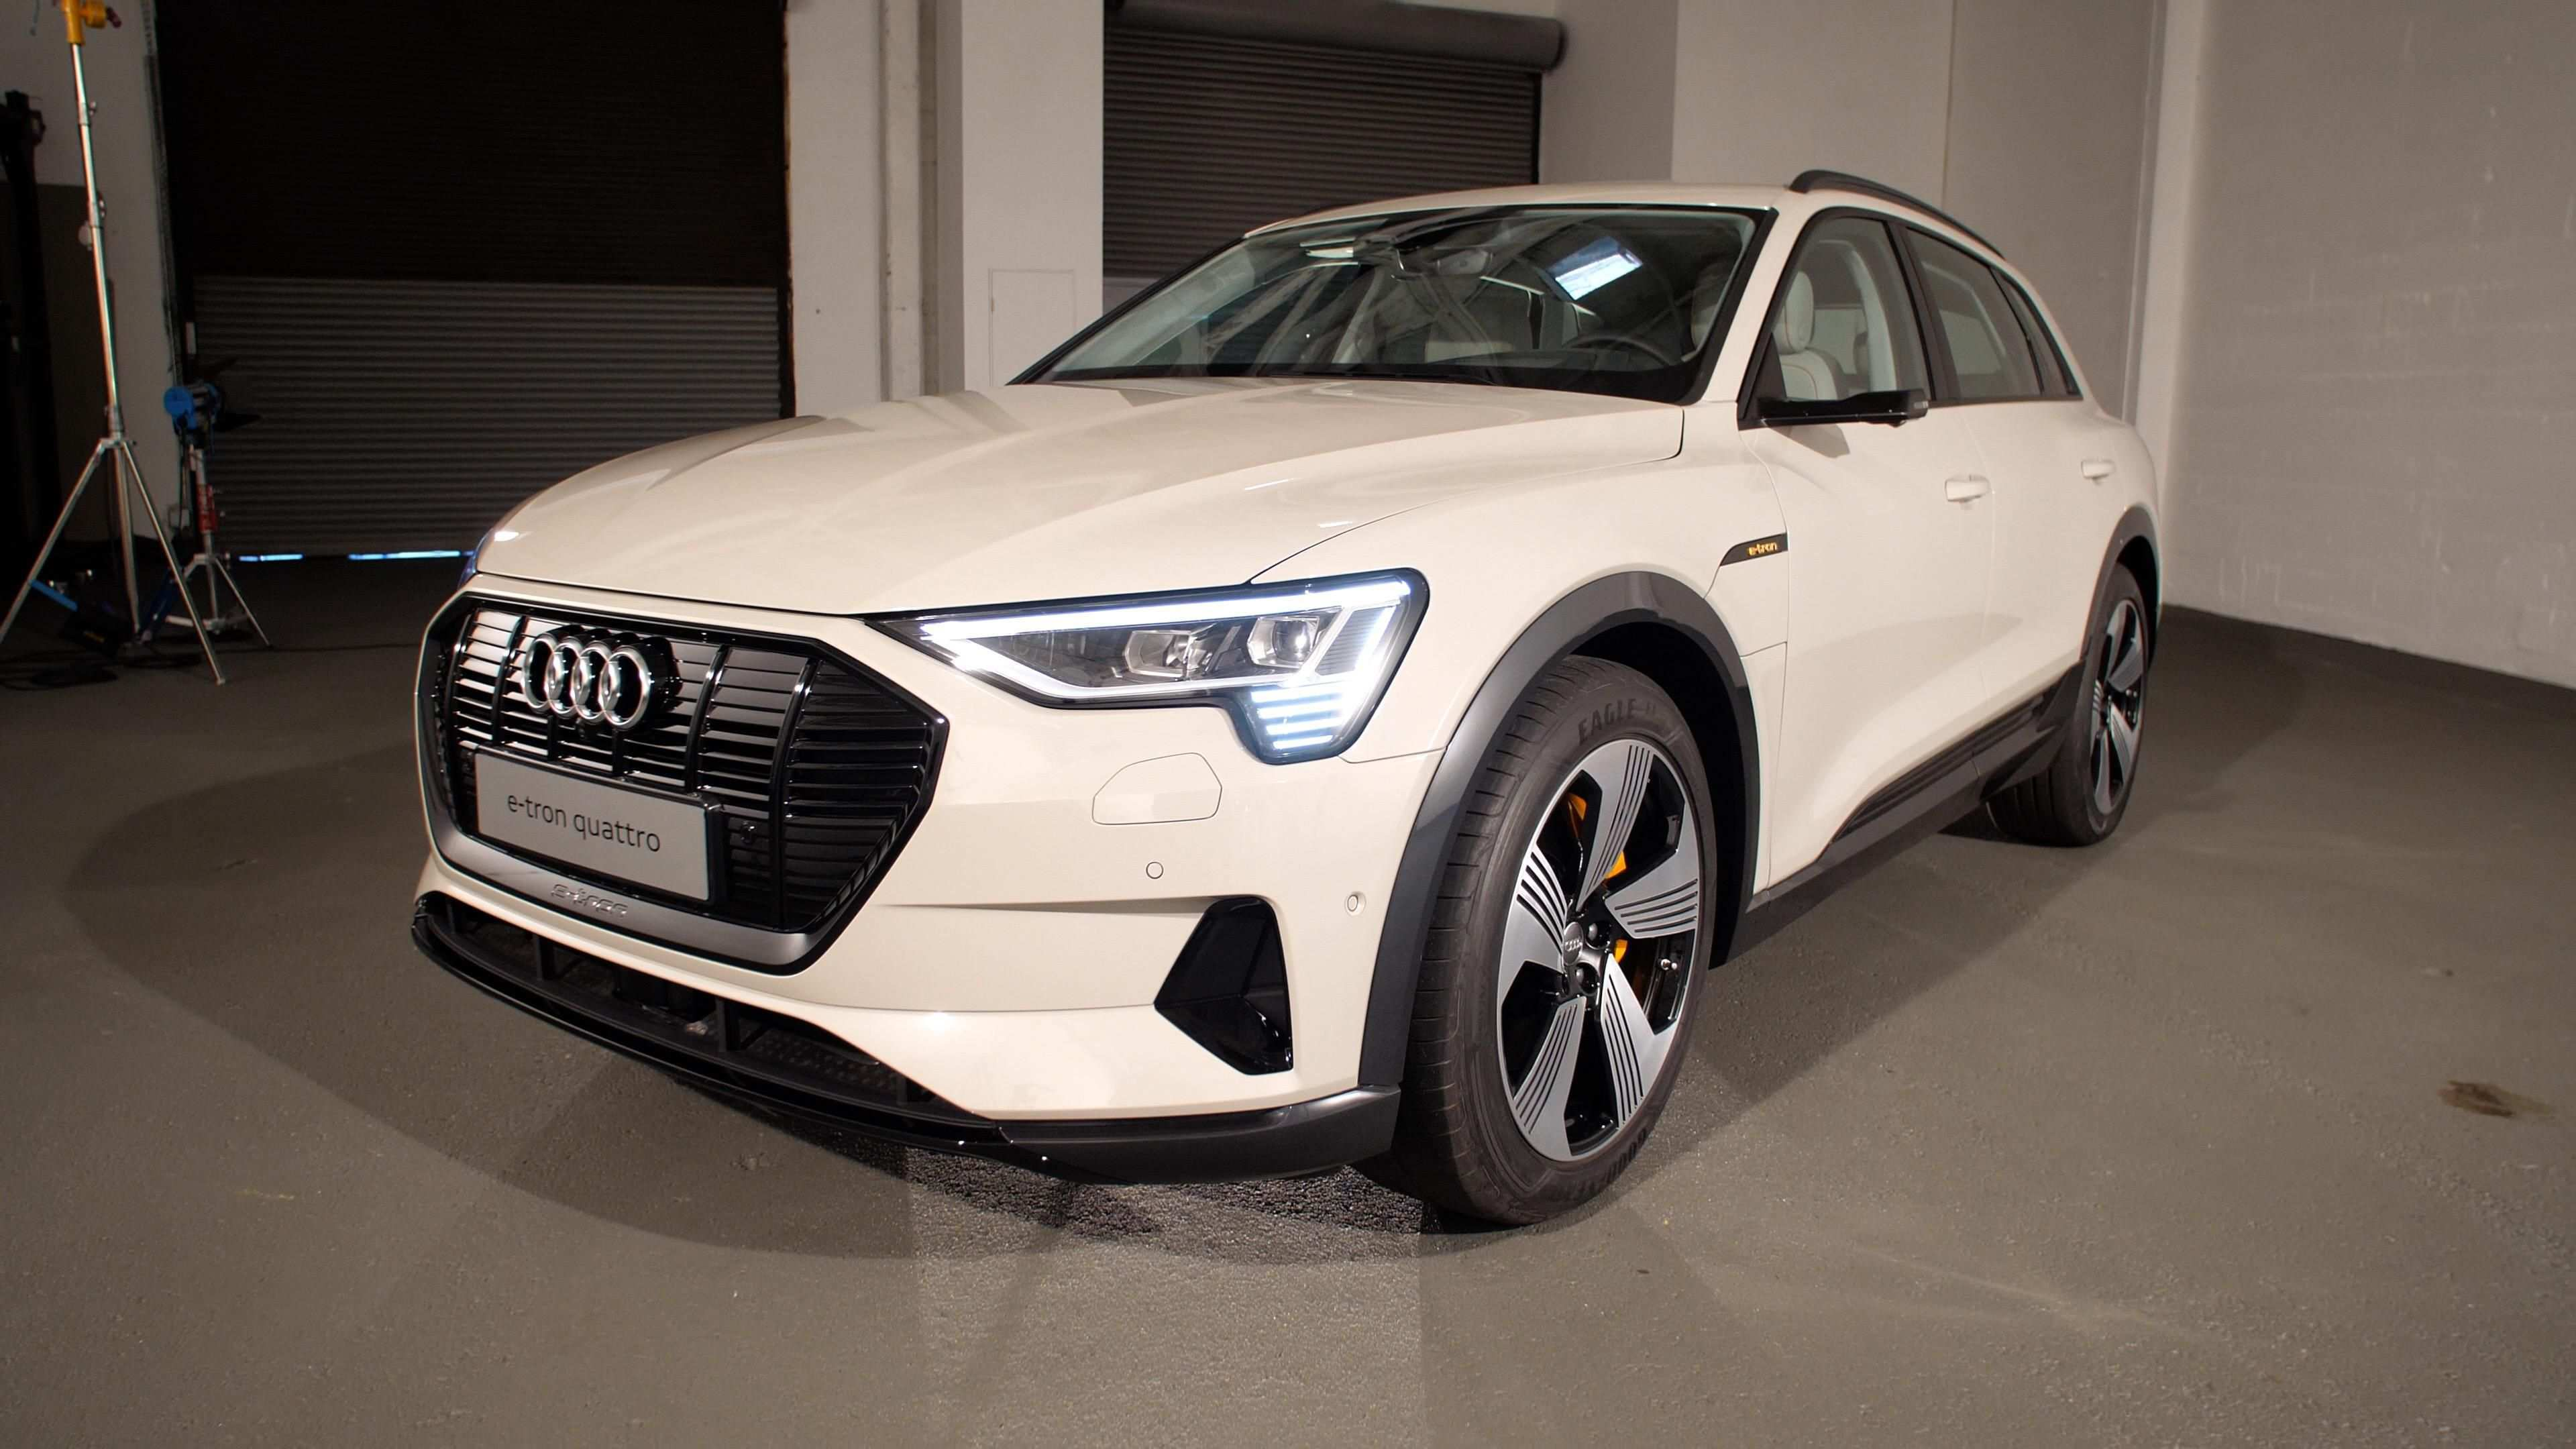 42 All New 2019 Audi E Tron Quattro Release Date Configurations